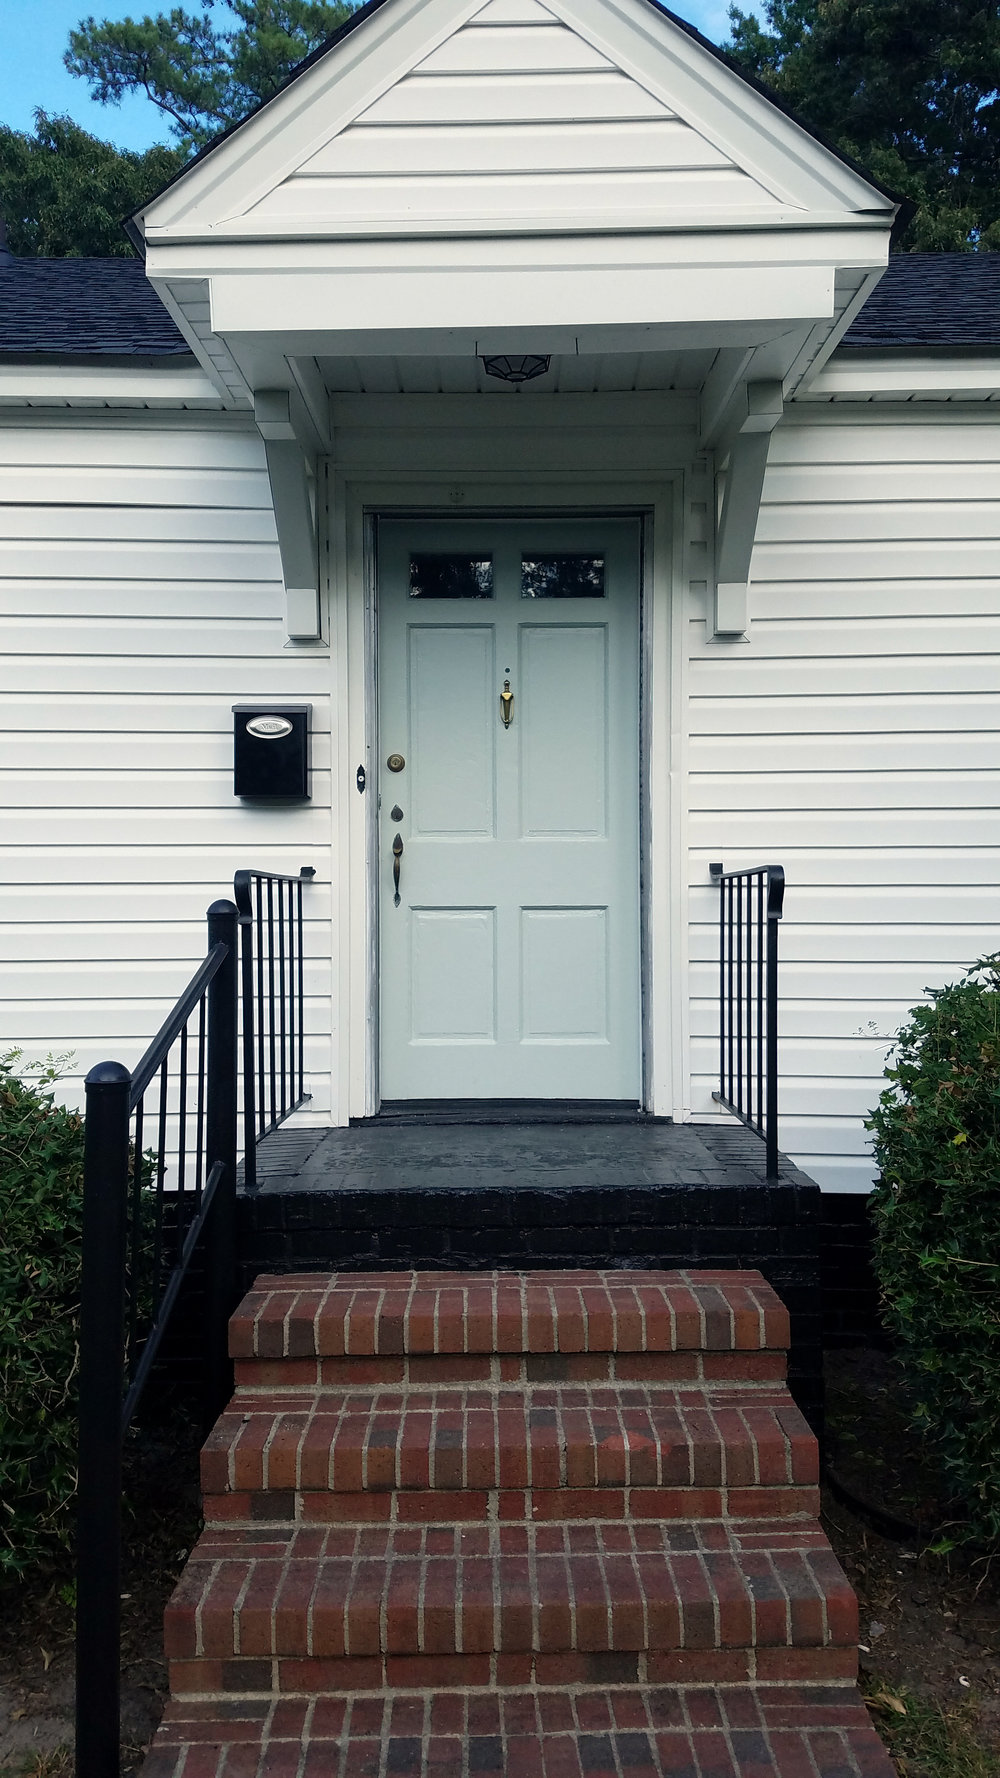 Haymount Homes Glenville House Front Door.jpg